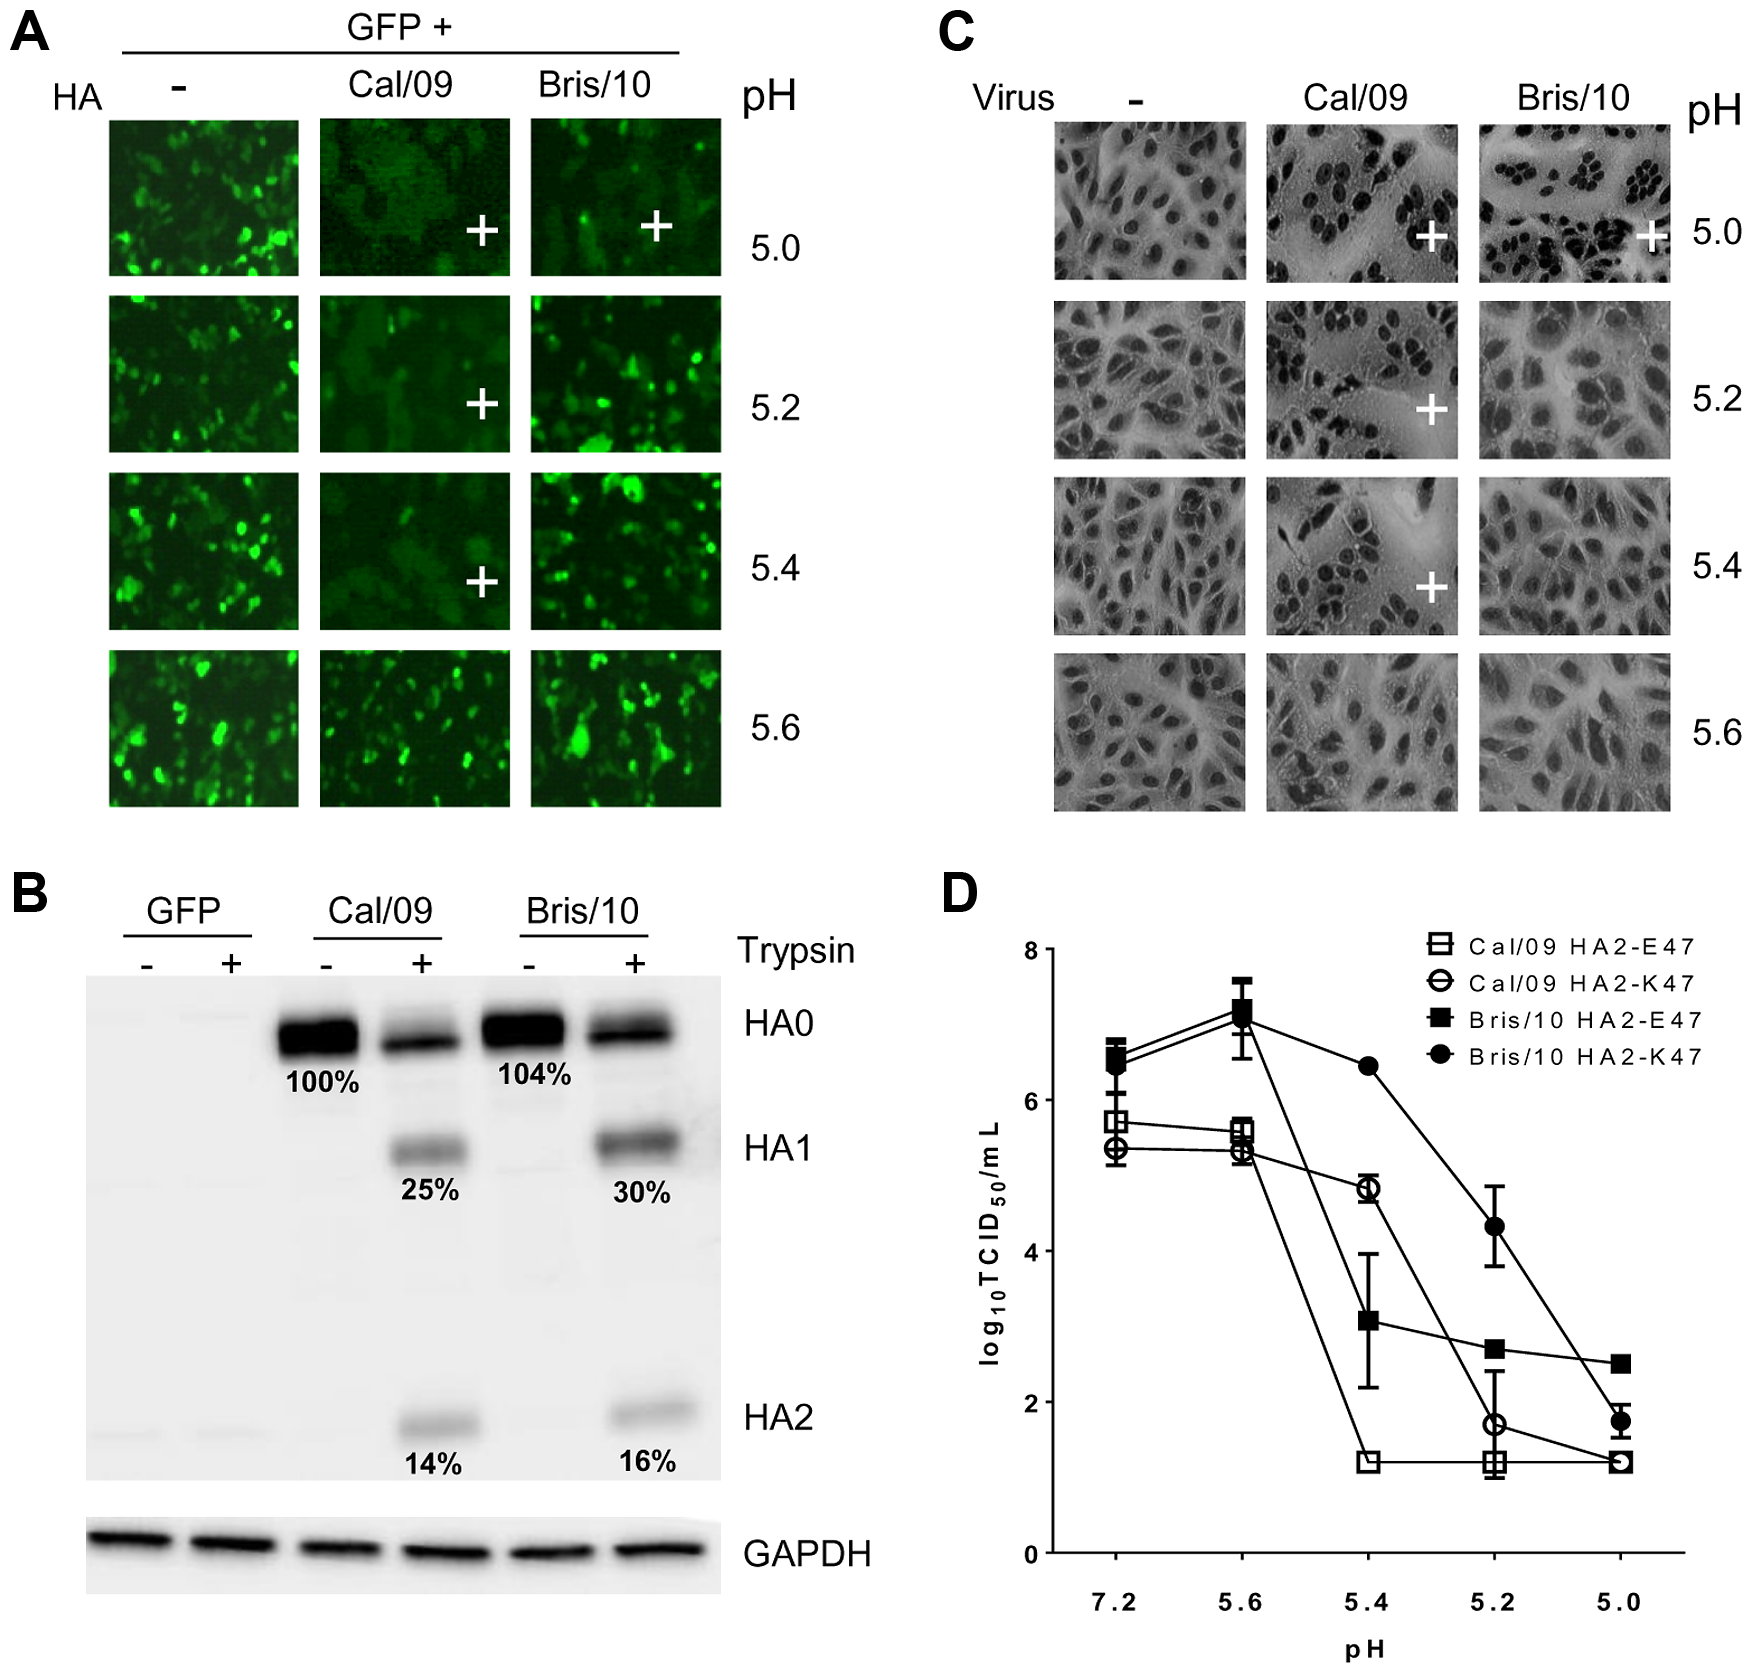 Cal/09 and Bris/10 HA differ in the threshold pH for membrane fusion.